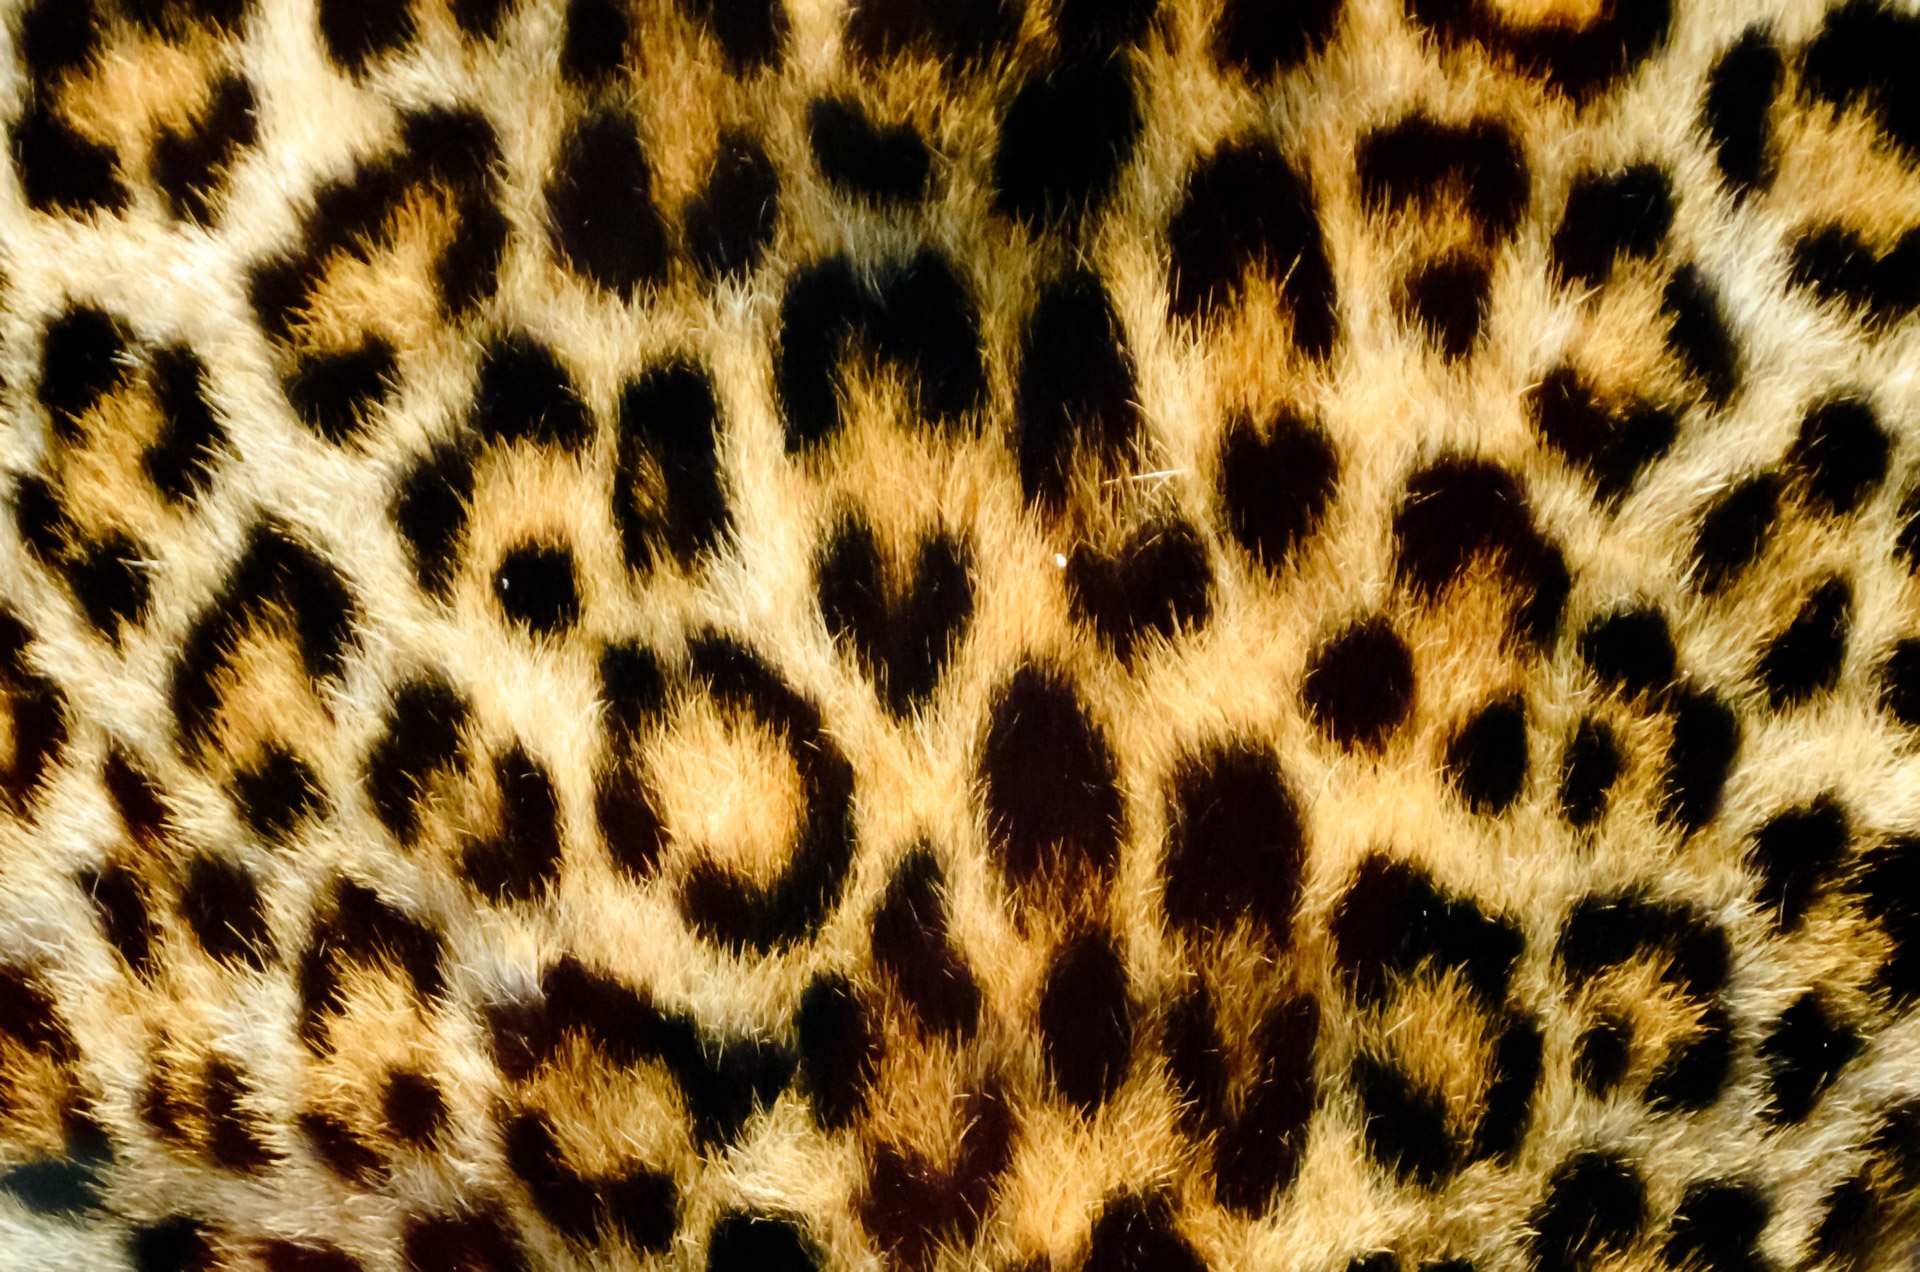 Iphone X Wallpaper Stock Hd Leopard Background Free Stock Photo Public Domain Pictures